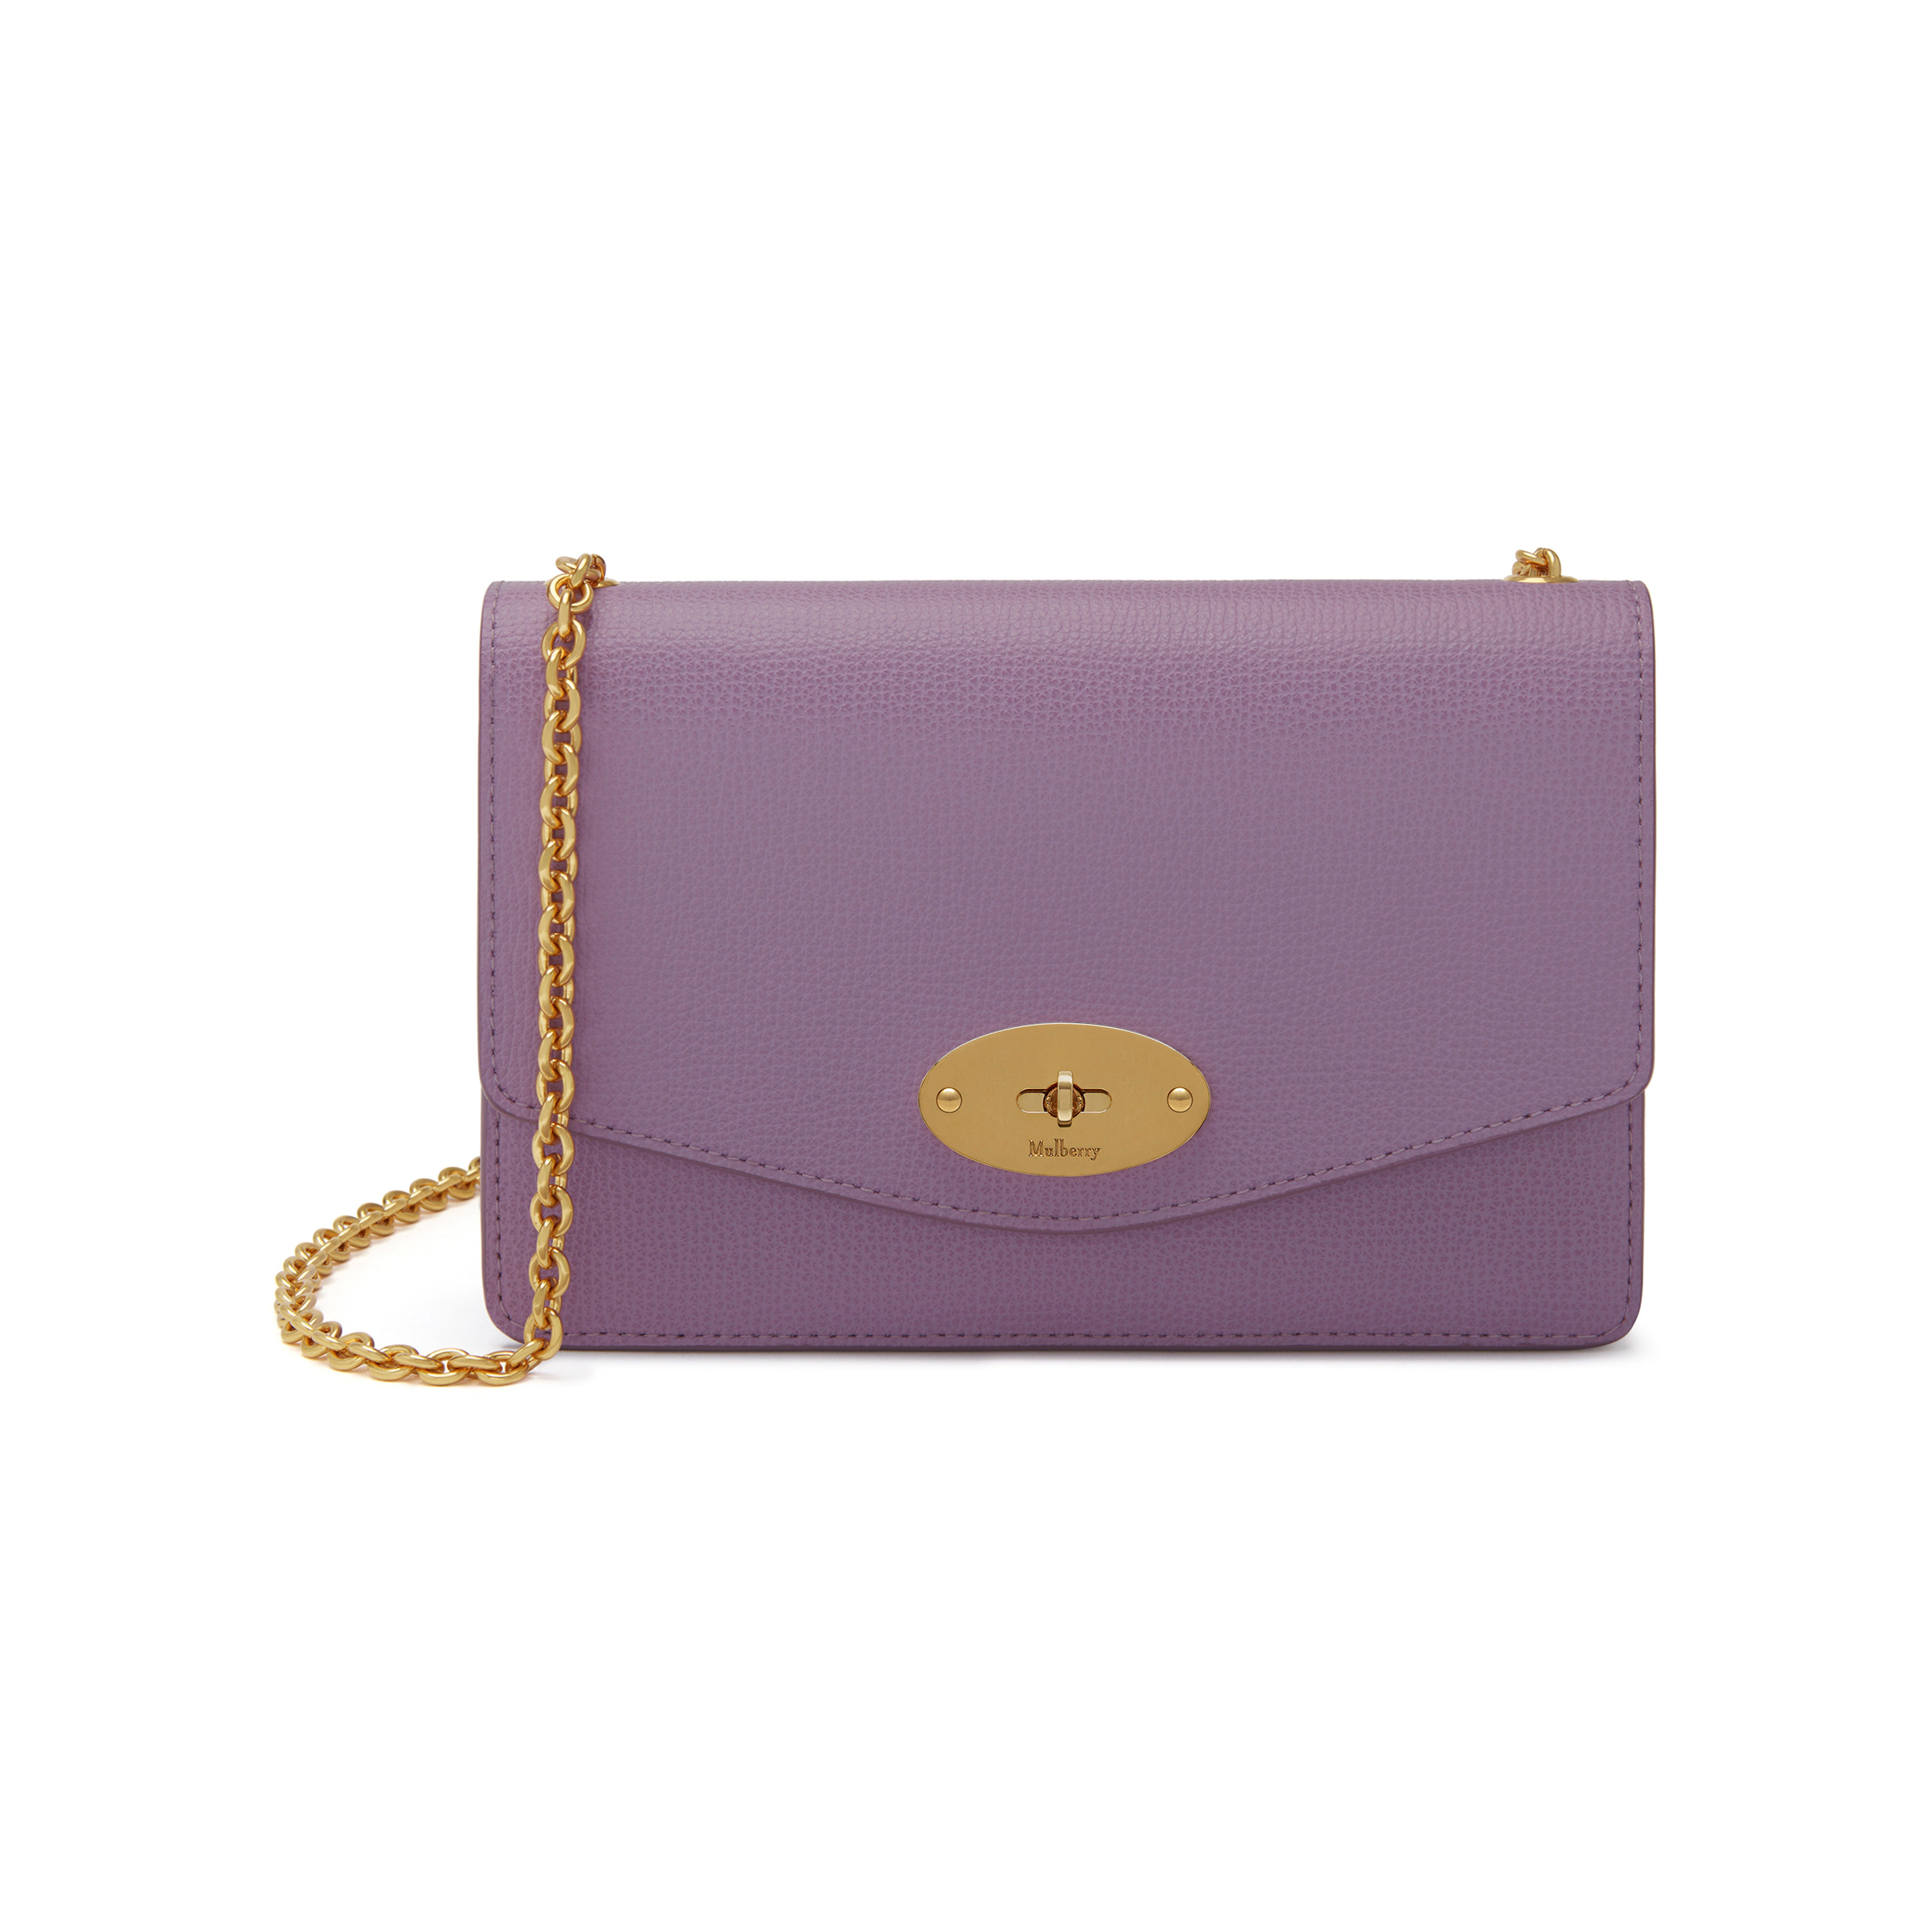 Mulberry Darley lilac leather small clutch JLhm6ah1p